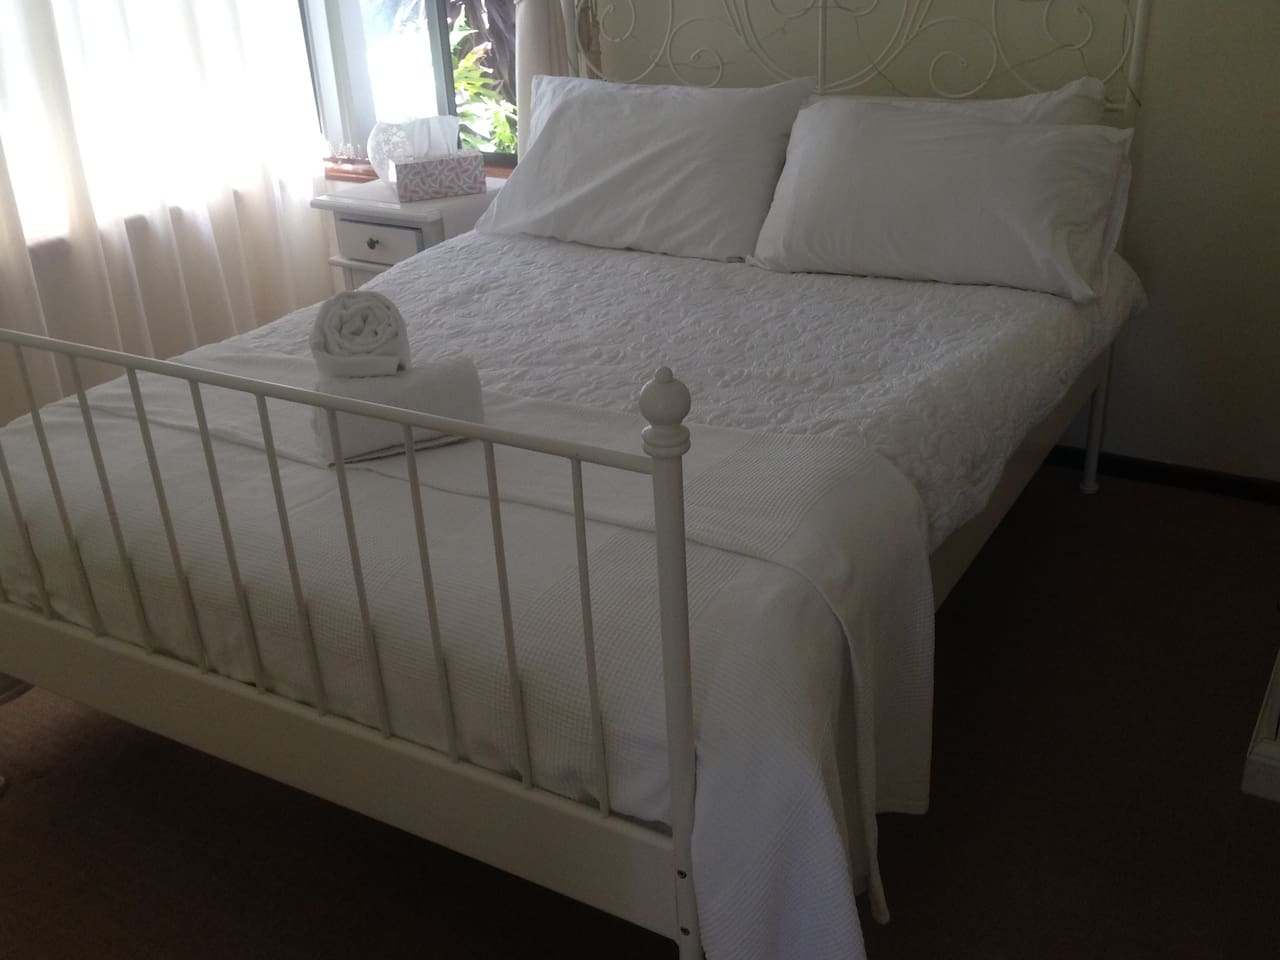 Guests will be accommodated in one of three double bedrooms of similar size and quality. Subject to availability, guests may request to change rooms for their preferred outlook.